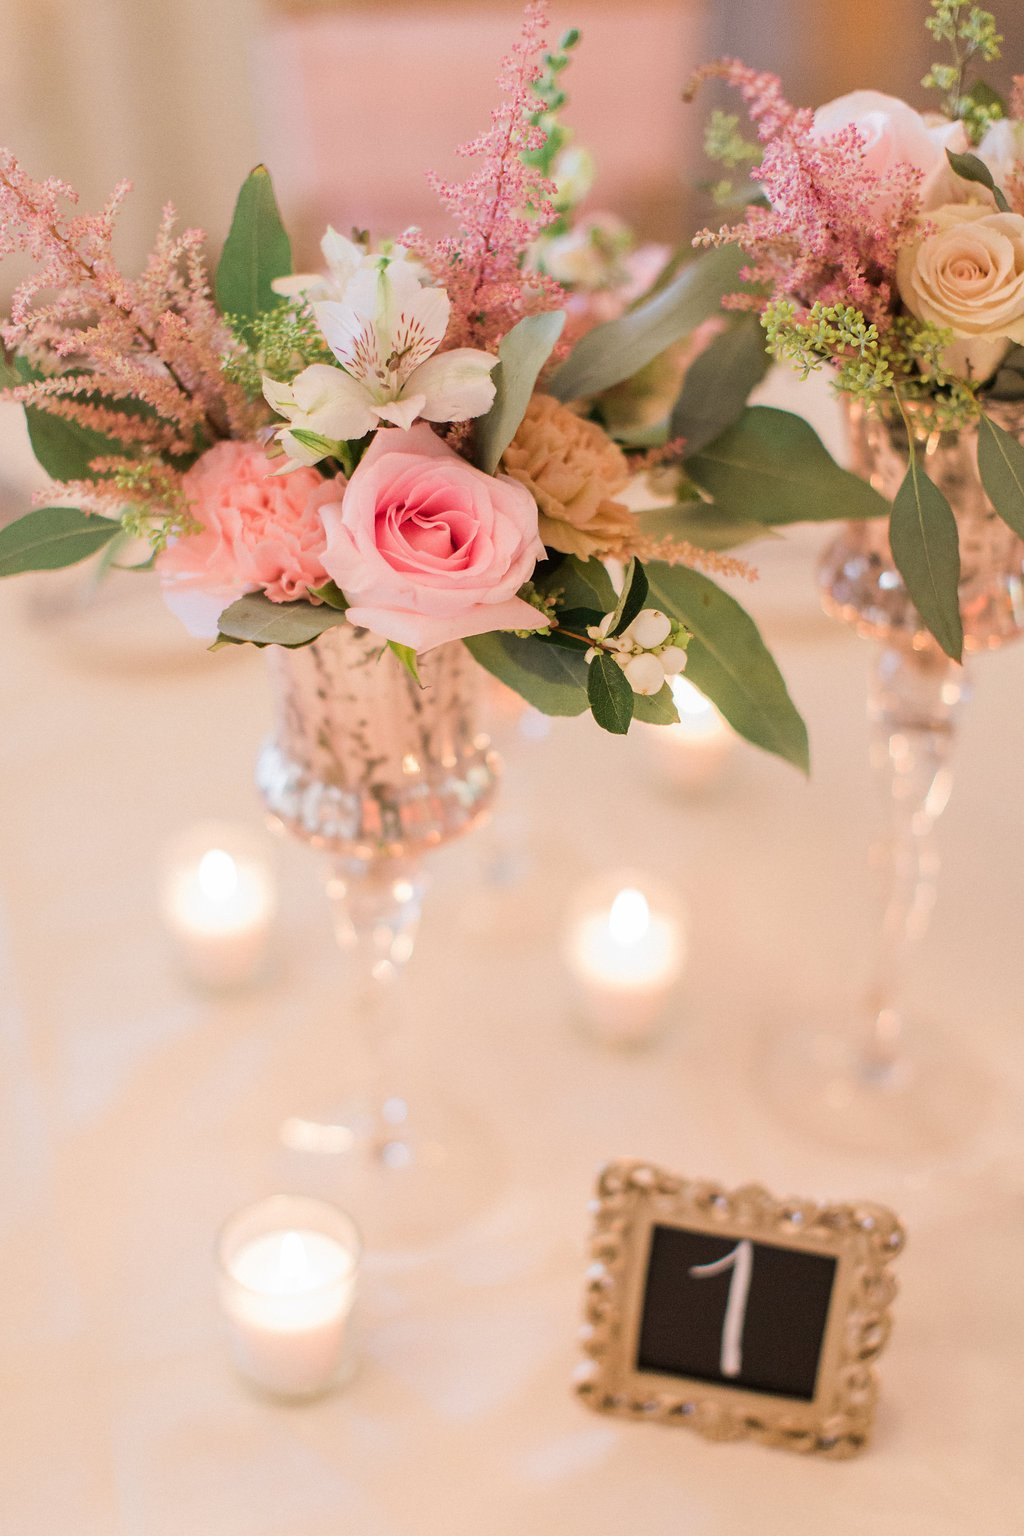 close up of flowers and table decor at wedding reception